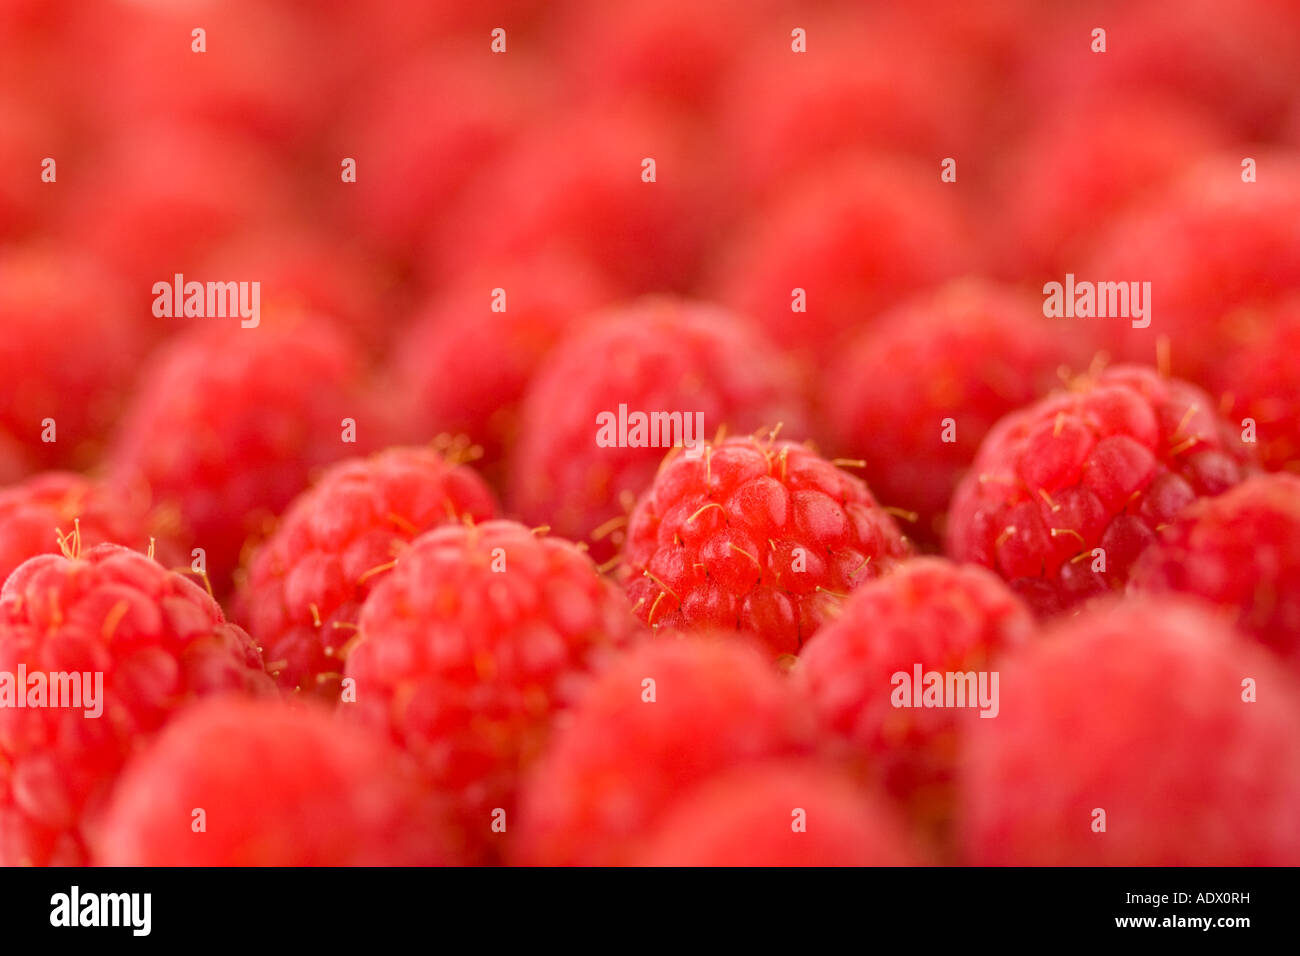 Raspeberries displayed for sale - Stock Image